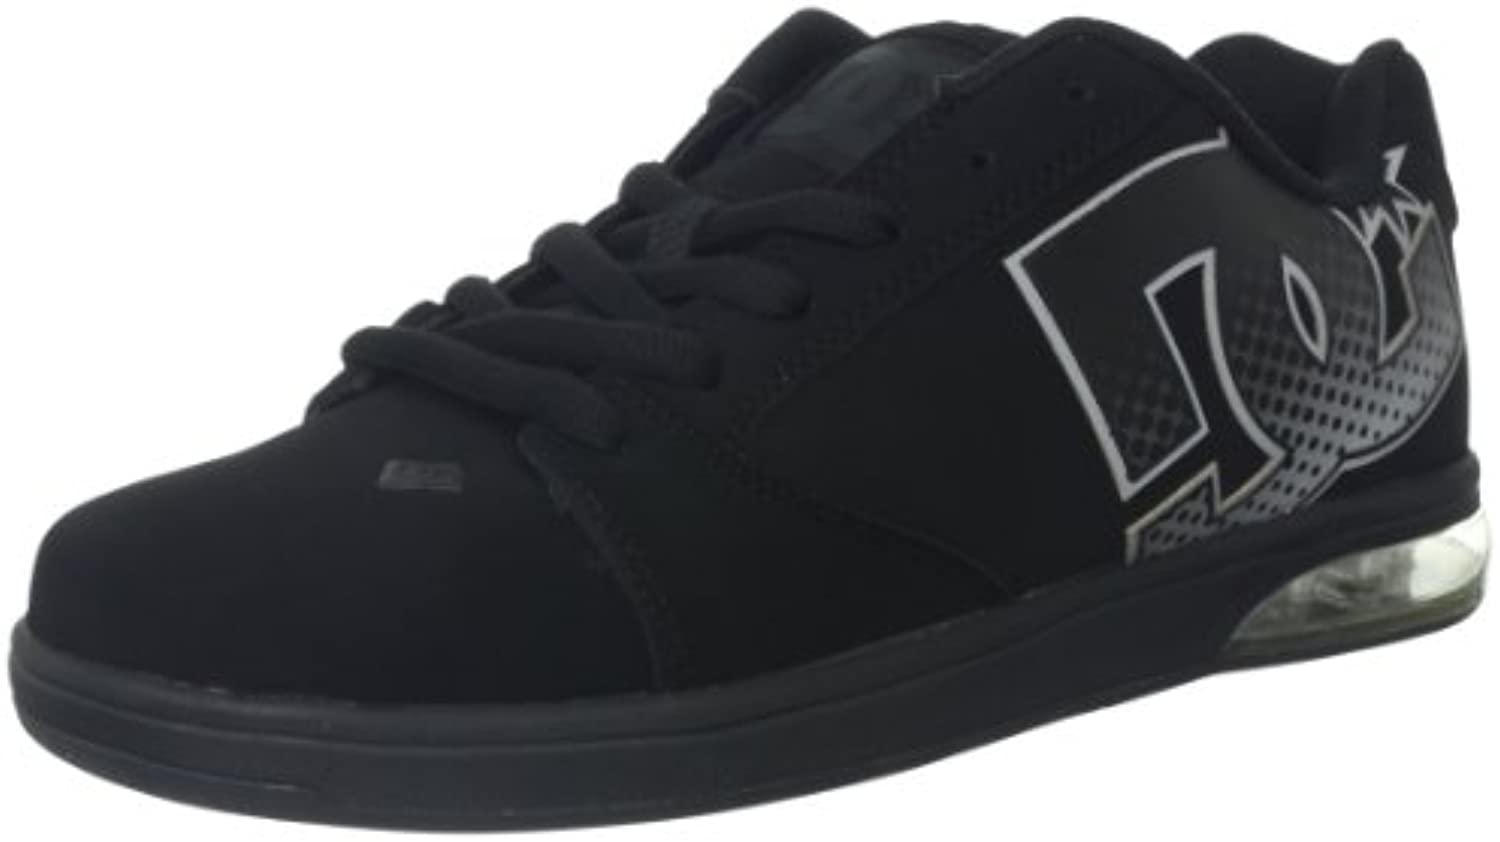 DC New Skate Shoes Raif Viz Air Pocket Black/Black Size 8  -